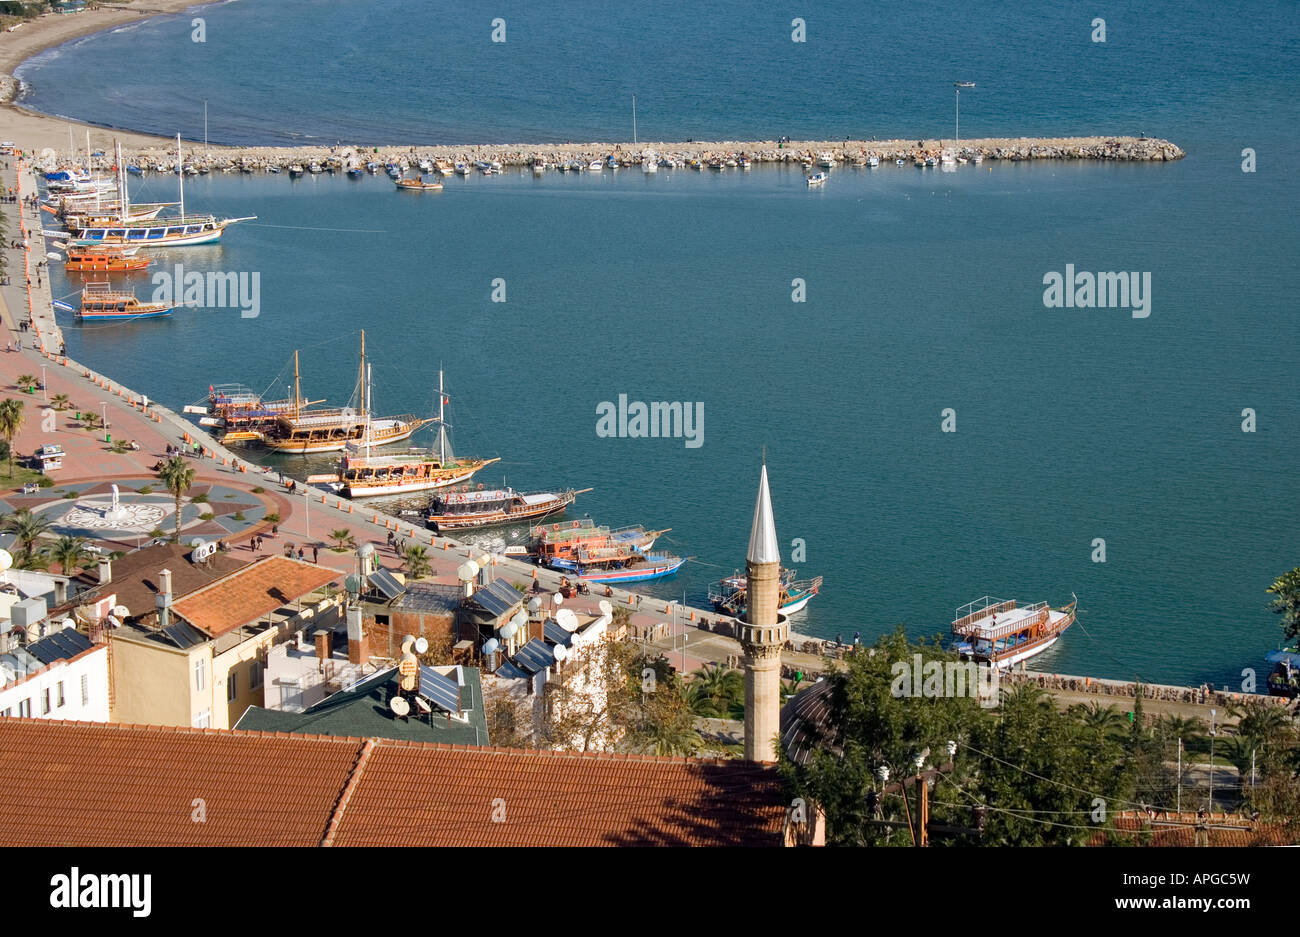 City View and Harbour of Alanya - Stock Image